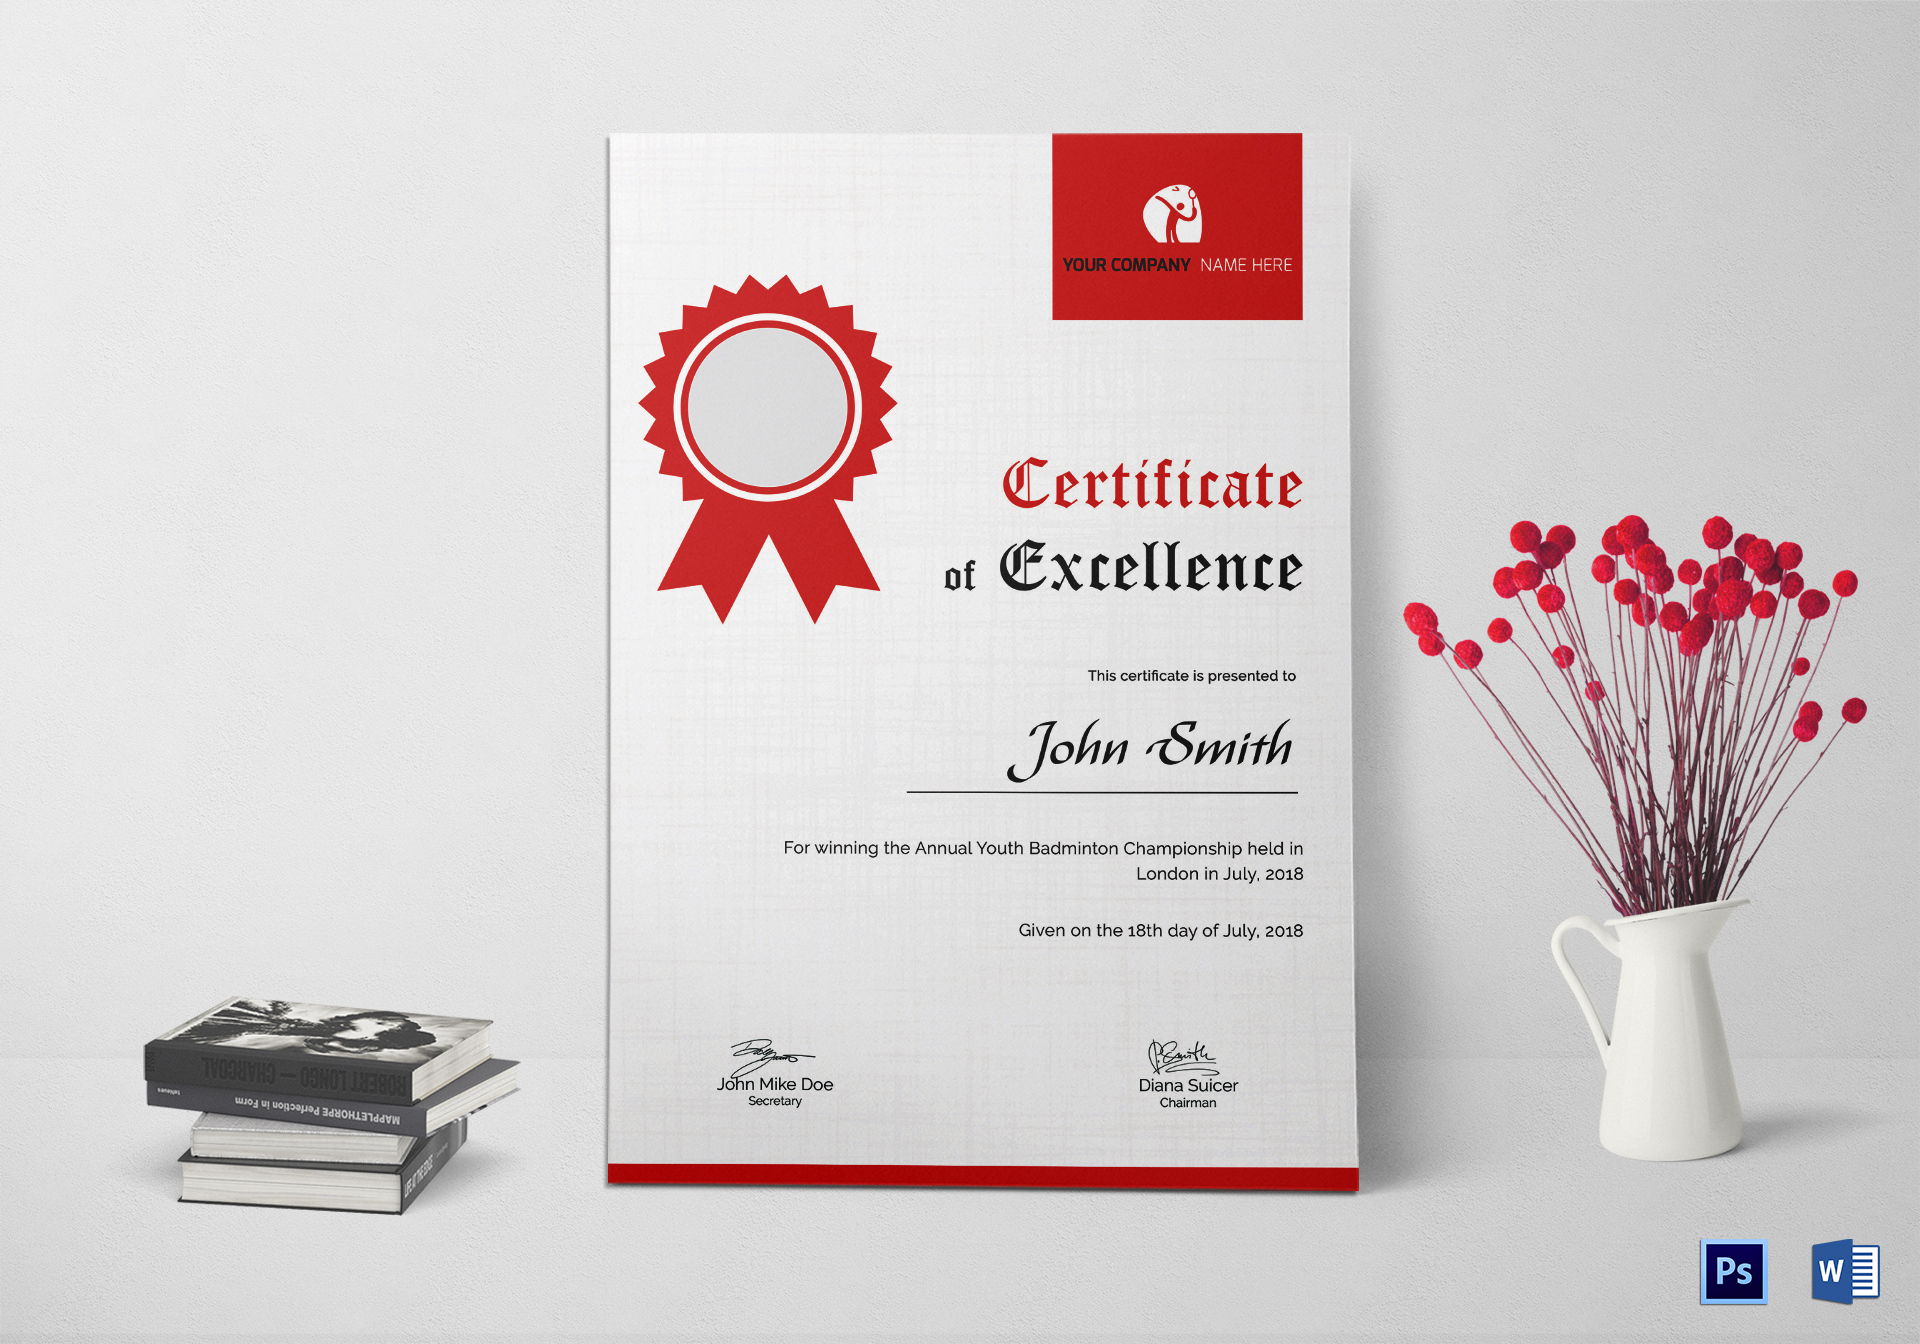 Badminton Excellence Certificate Template Throughout inside Badminton Certificate Templates